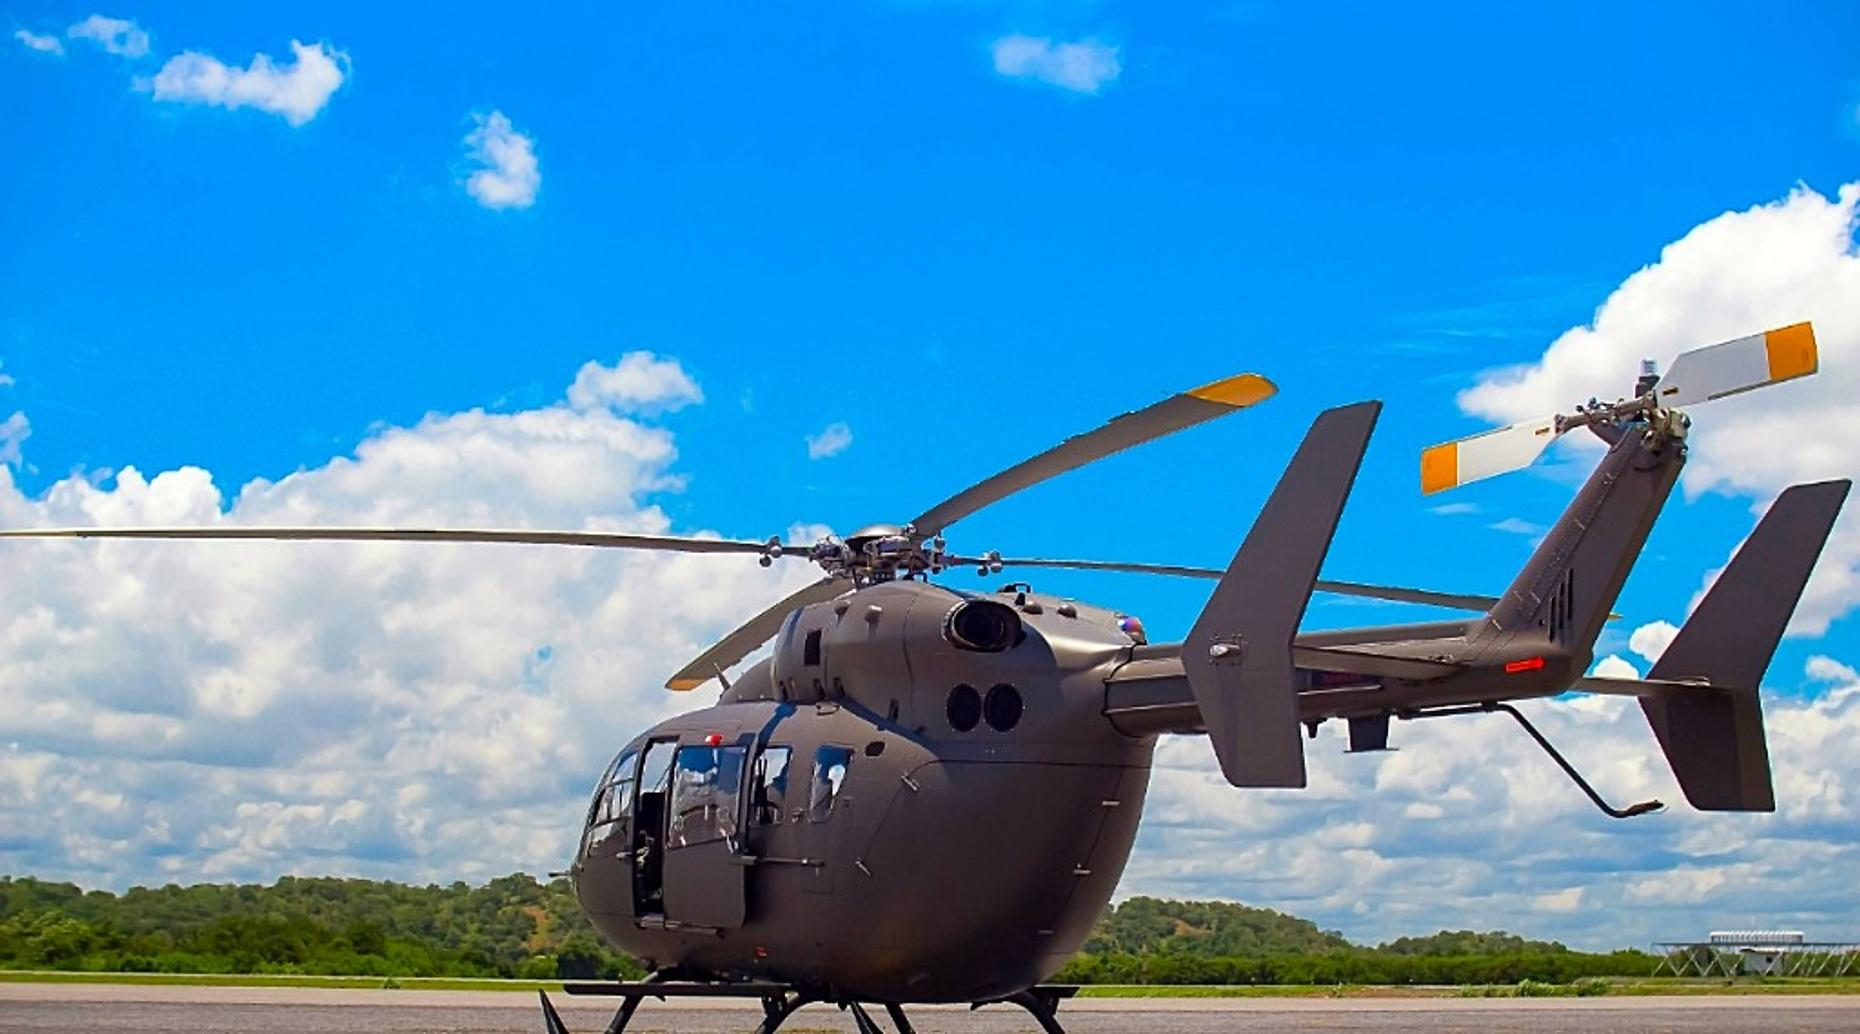 15-Minute Lake Lanier Helicopter Tour